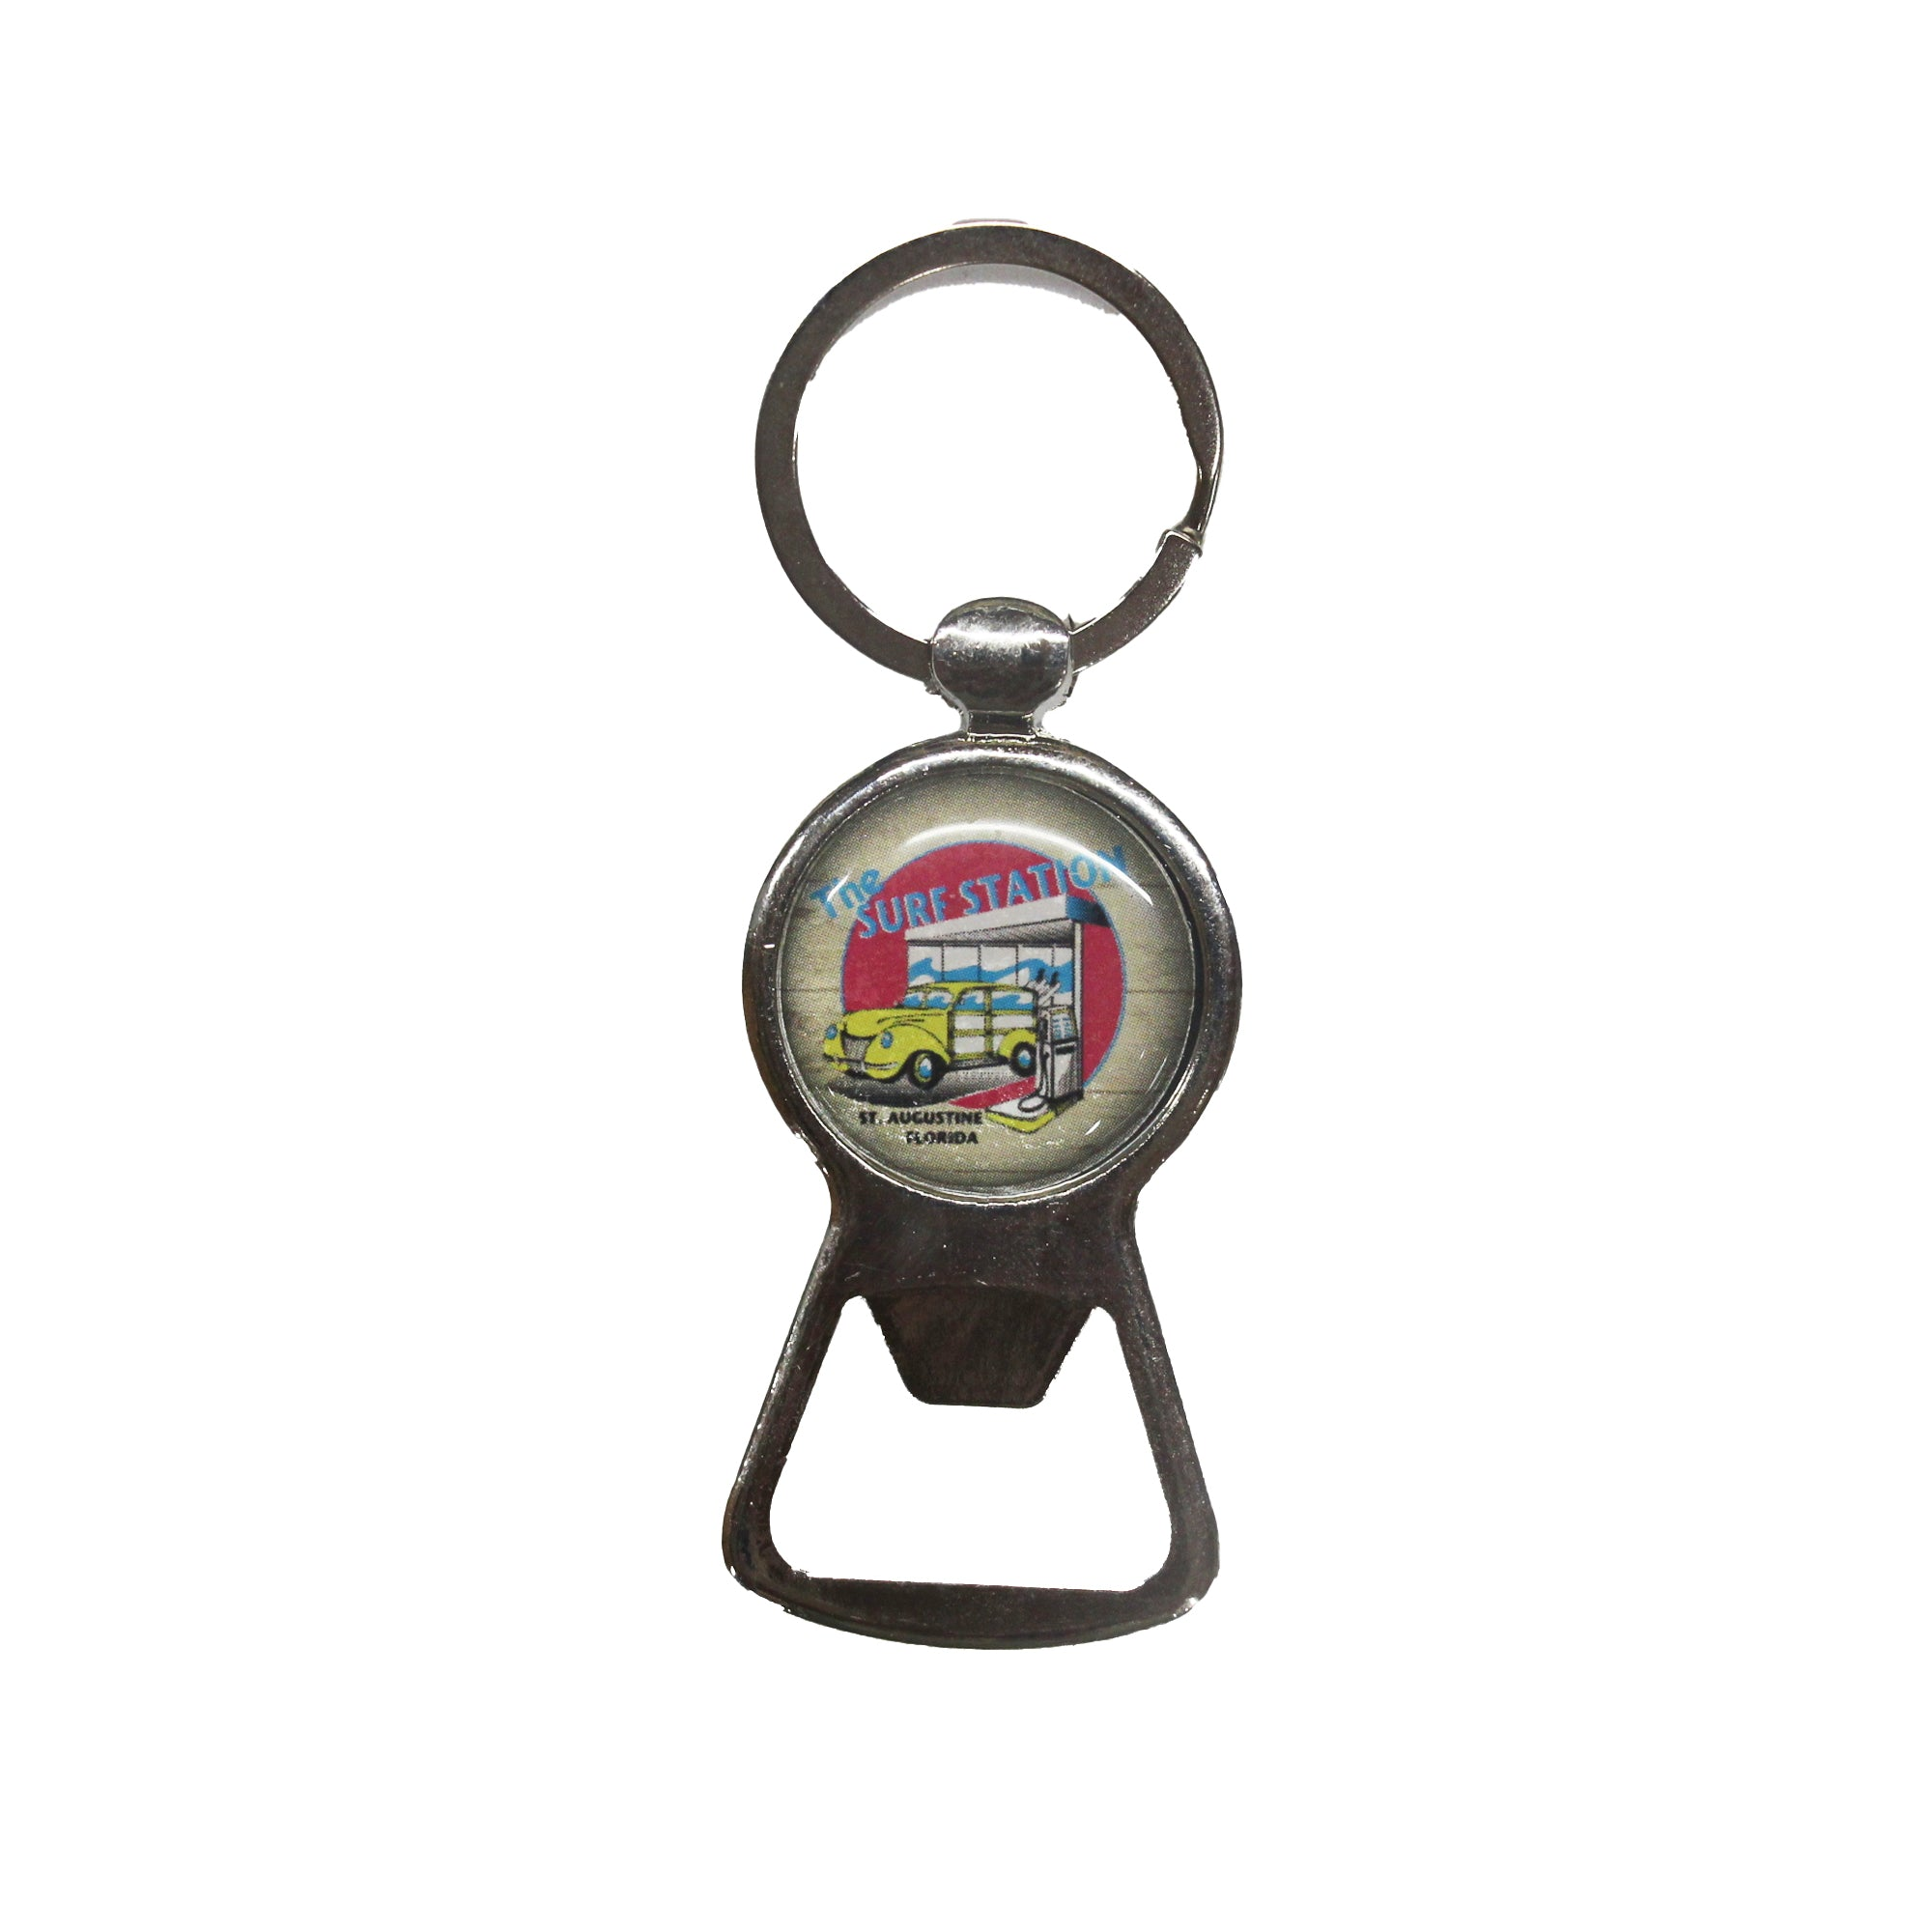 Surf Station Woody Bottle Opener Keychain